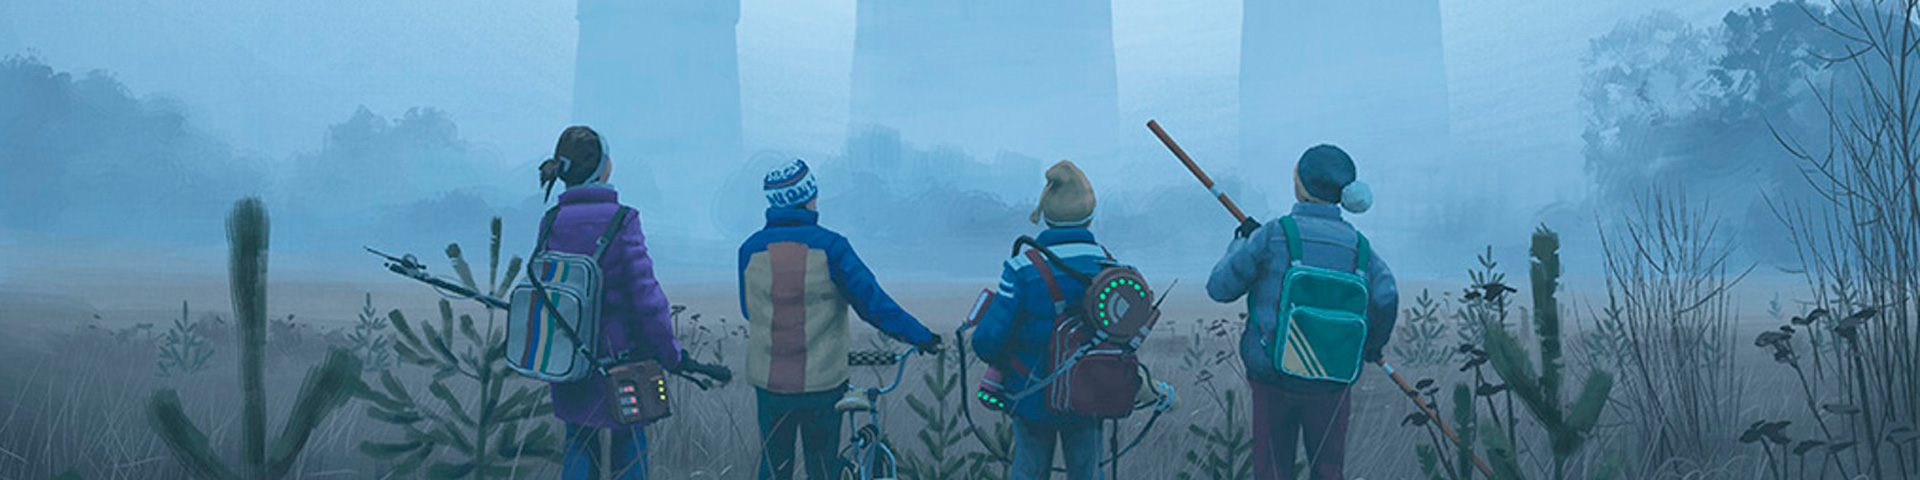 Four kids with bikes look at the looming shapes of cooling towers peaking through the mists.